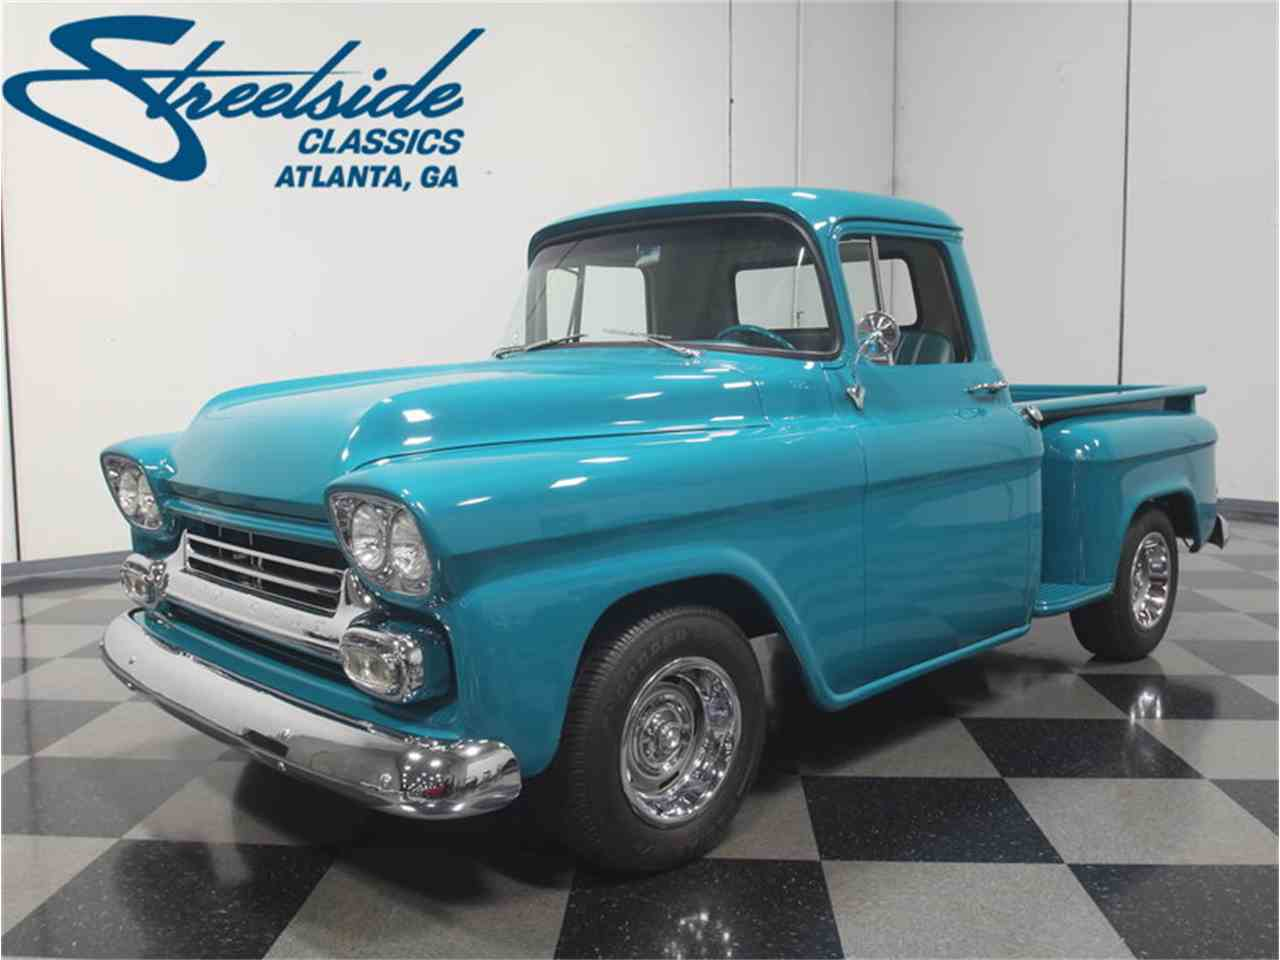 Pickup 61 chevy pickup : 1959 to 1961 Chevrolet Apache for Sale on ClassicCars.com